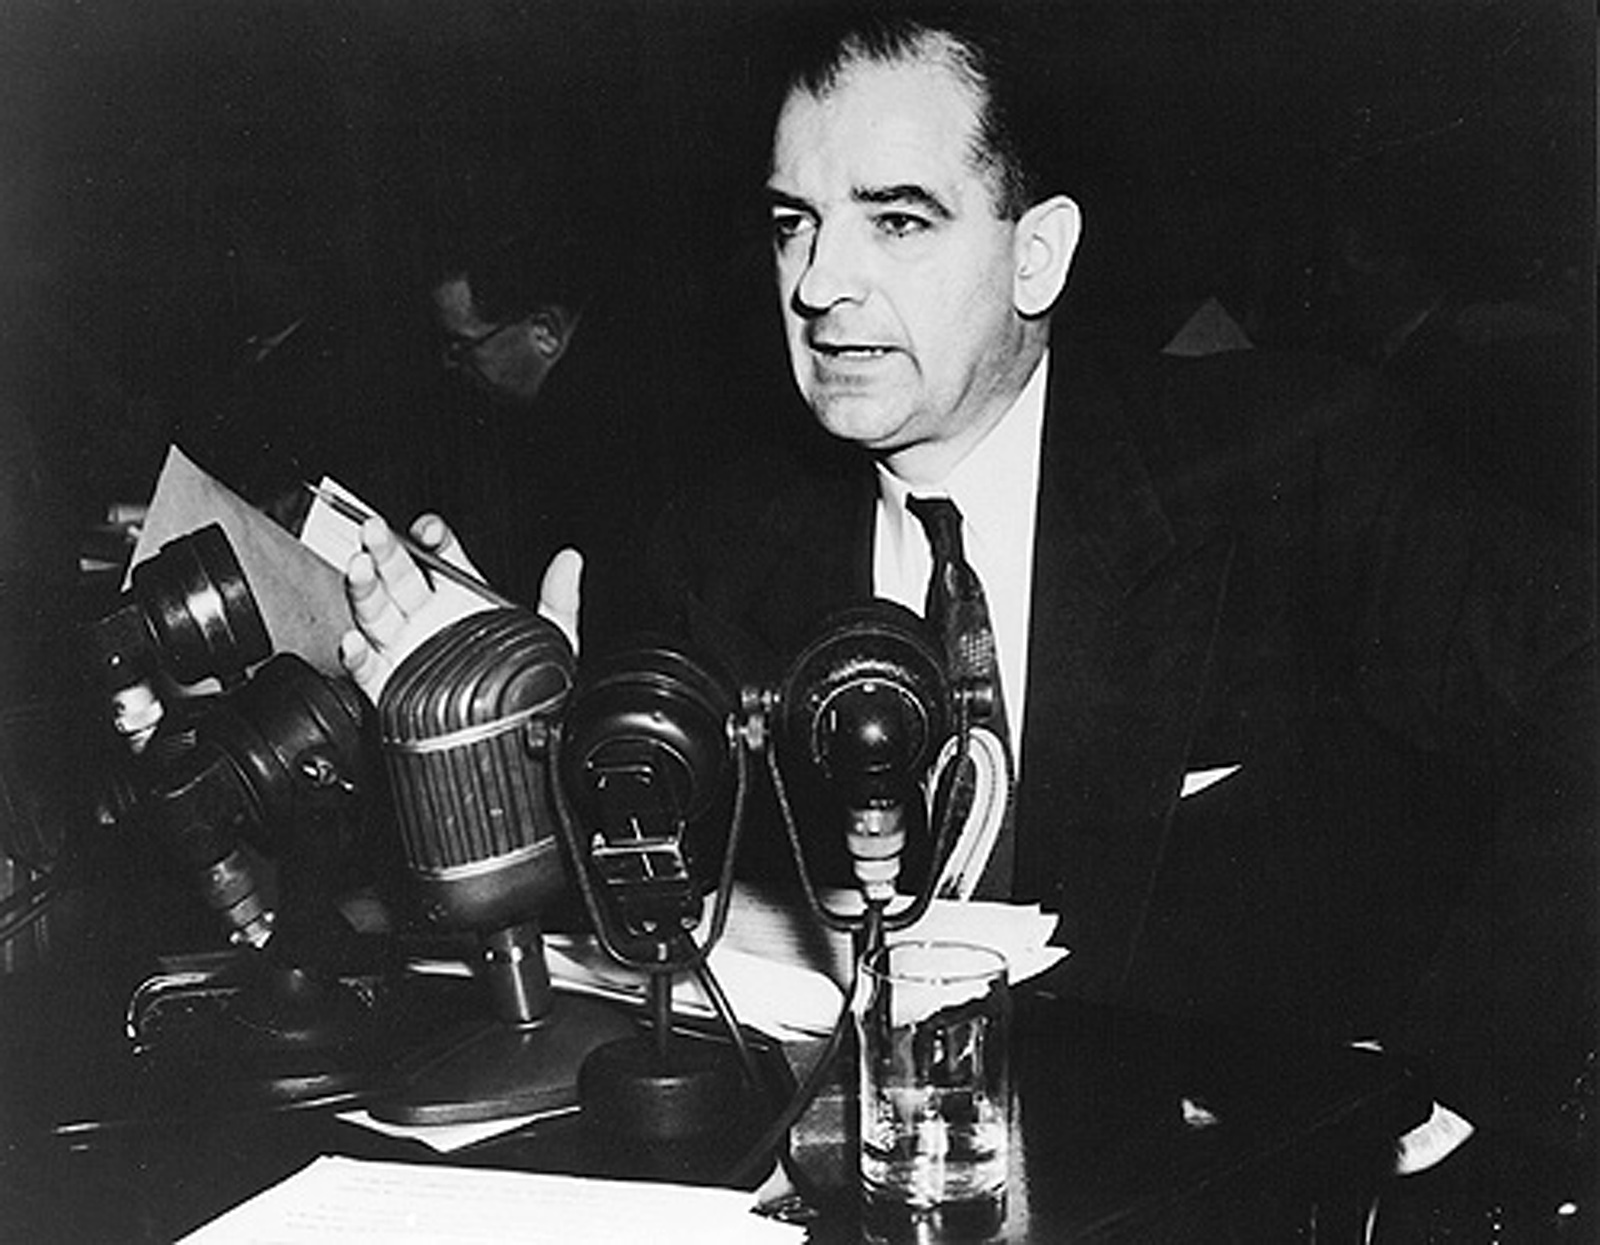 a history of joe mccarthy and mccarthyism Mccarthyism, mccarthy, senator joseph: he started the hysteria that occurred after the second red scare and accused us citizens of being communists these accusations appealed to midwestern americans who found that anti-communism was to fight against liberals and internationalists.